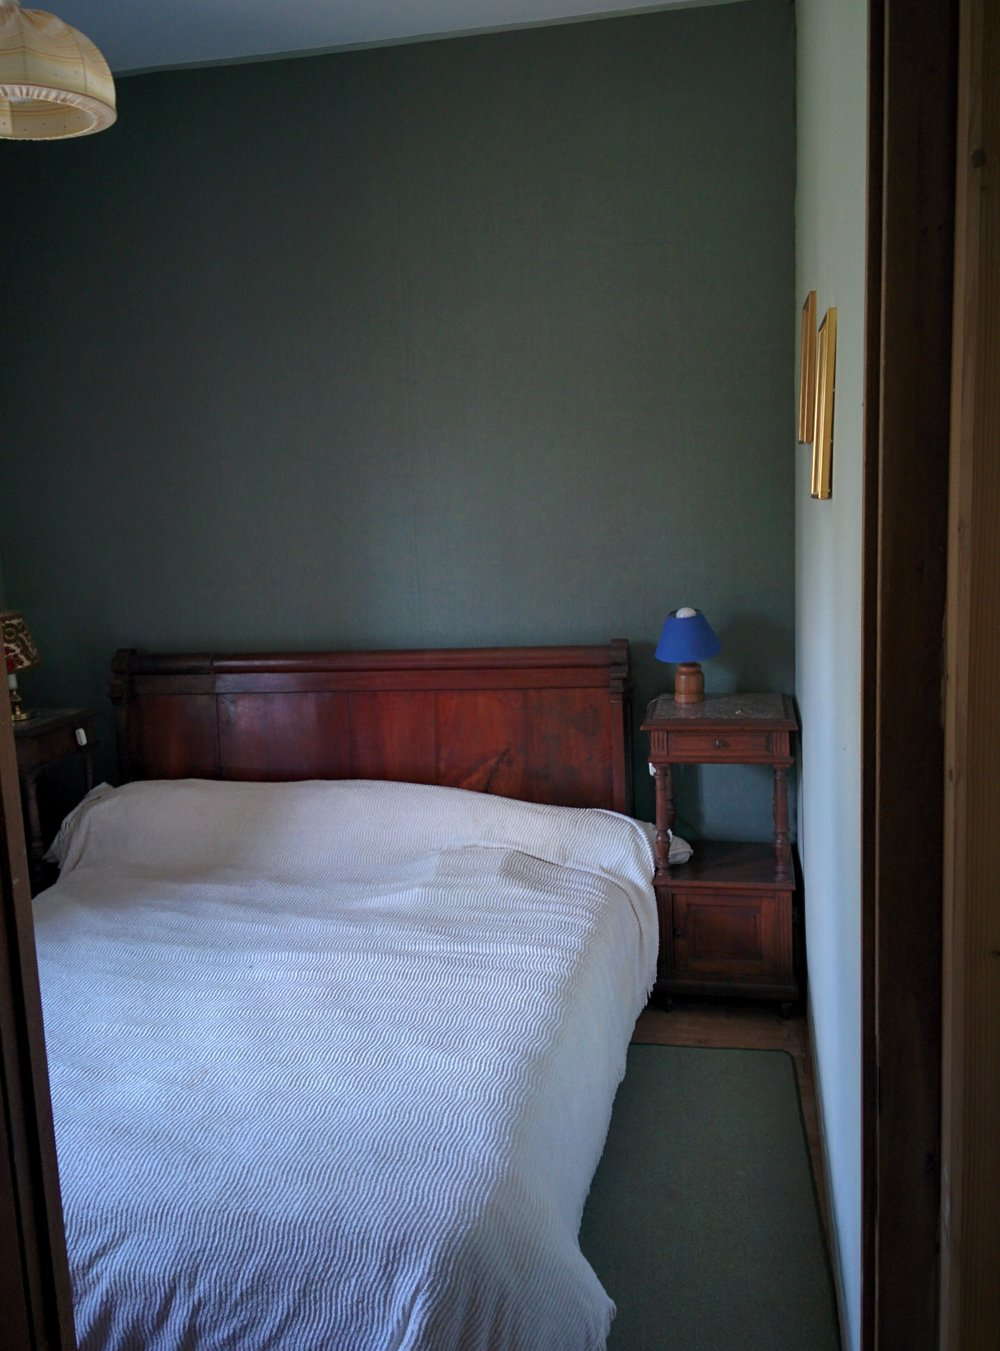 This double bed and a big old wardrobe were in the second half of the room, behind the partition wall.